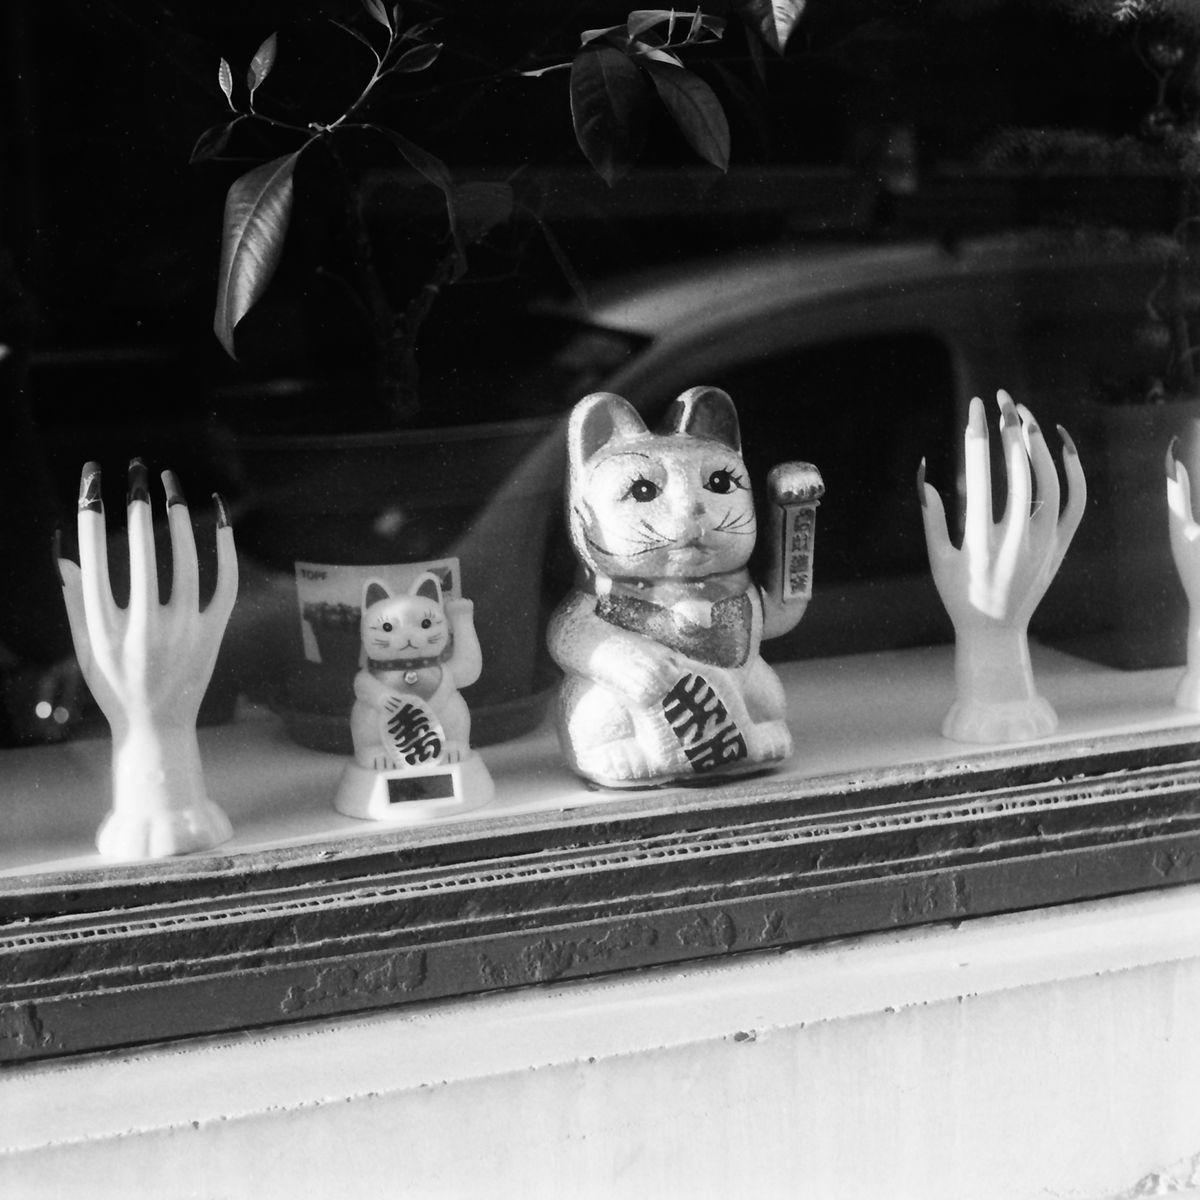 5 Frames… On the last day before lockdown with ILFORD FP4 PLUS (EI 125 / 35mm format / Robot Royal 24 Mod III) – by Anthony Chatain